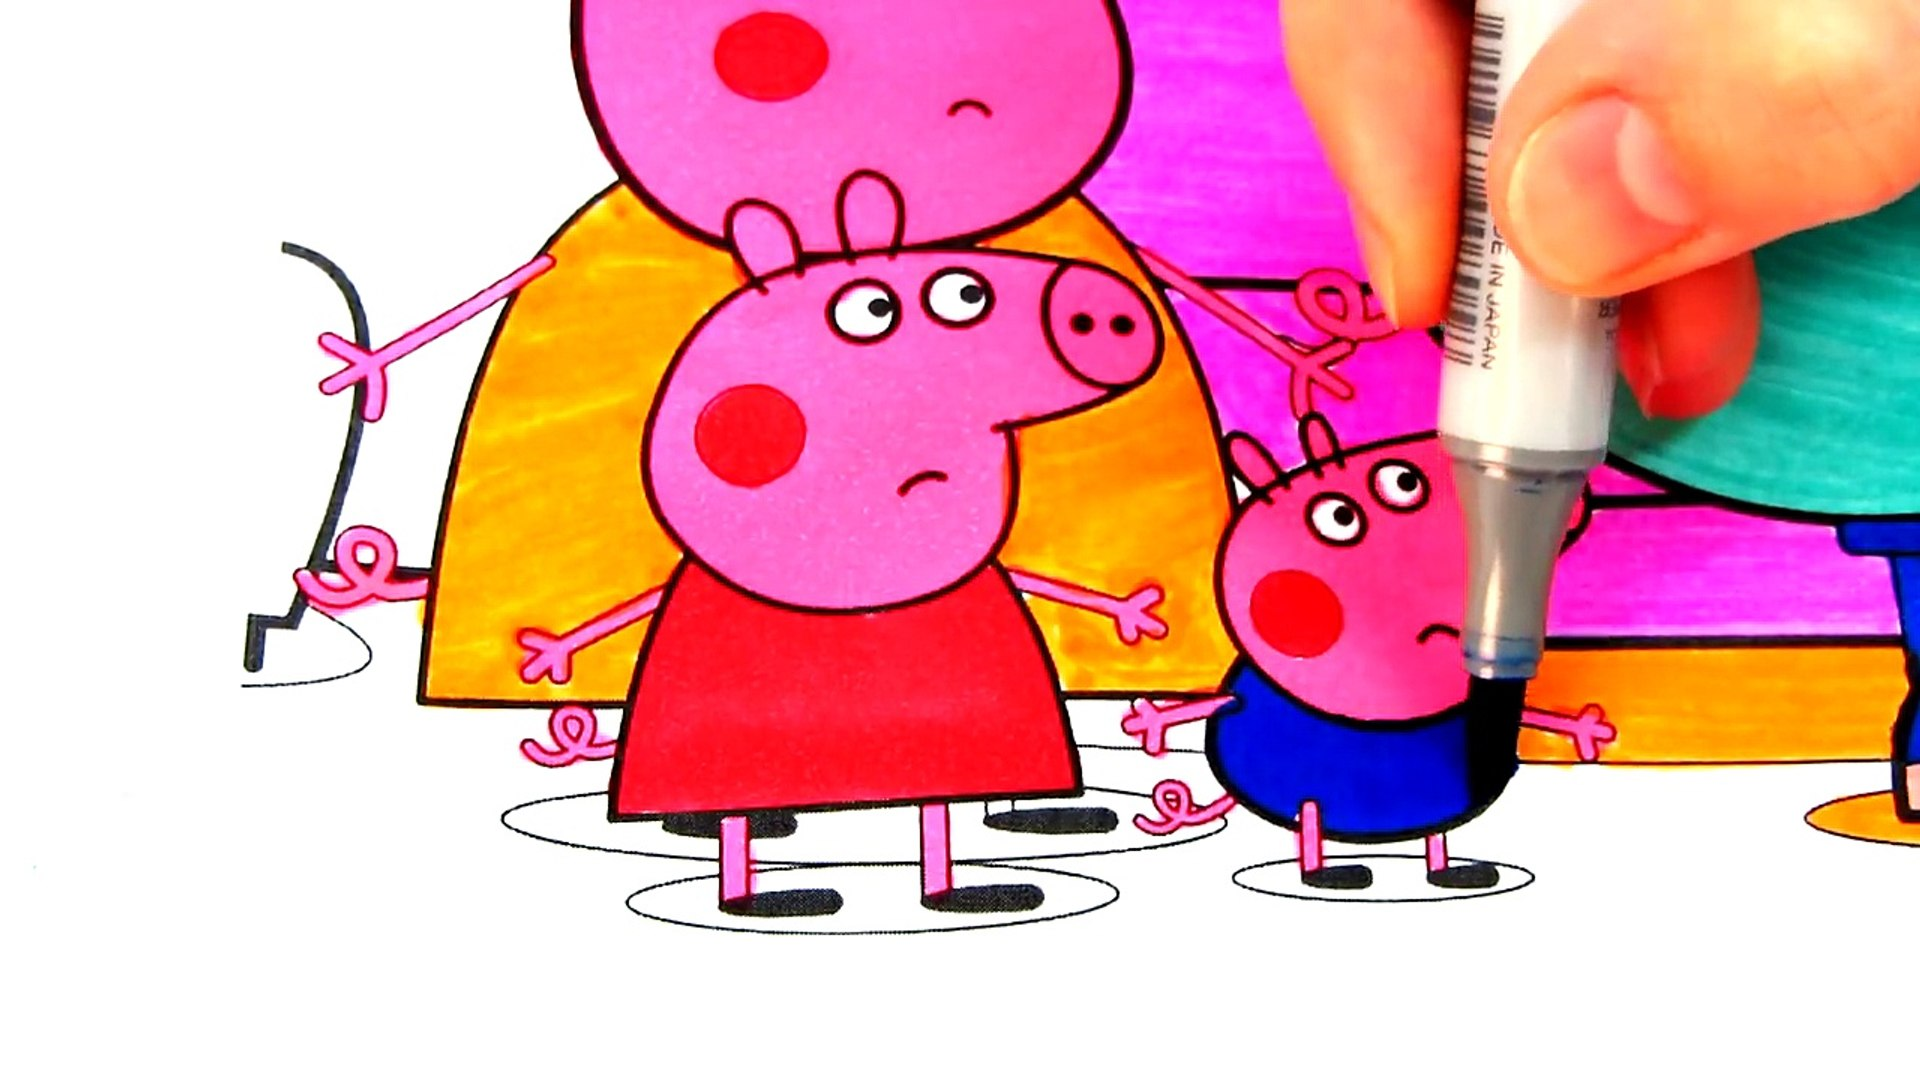 Peppa Pig Daddy Pig Watching TV Coloring Book Pages Videos For Kids with  Colored Markers.